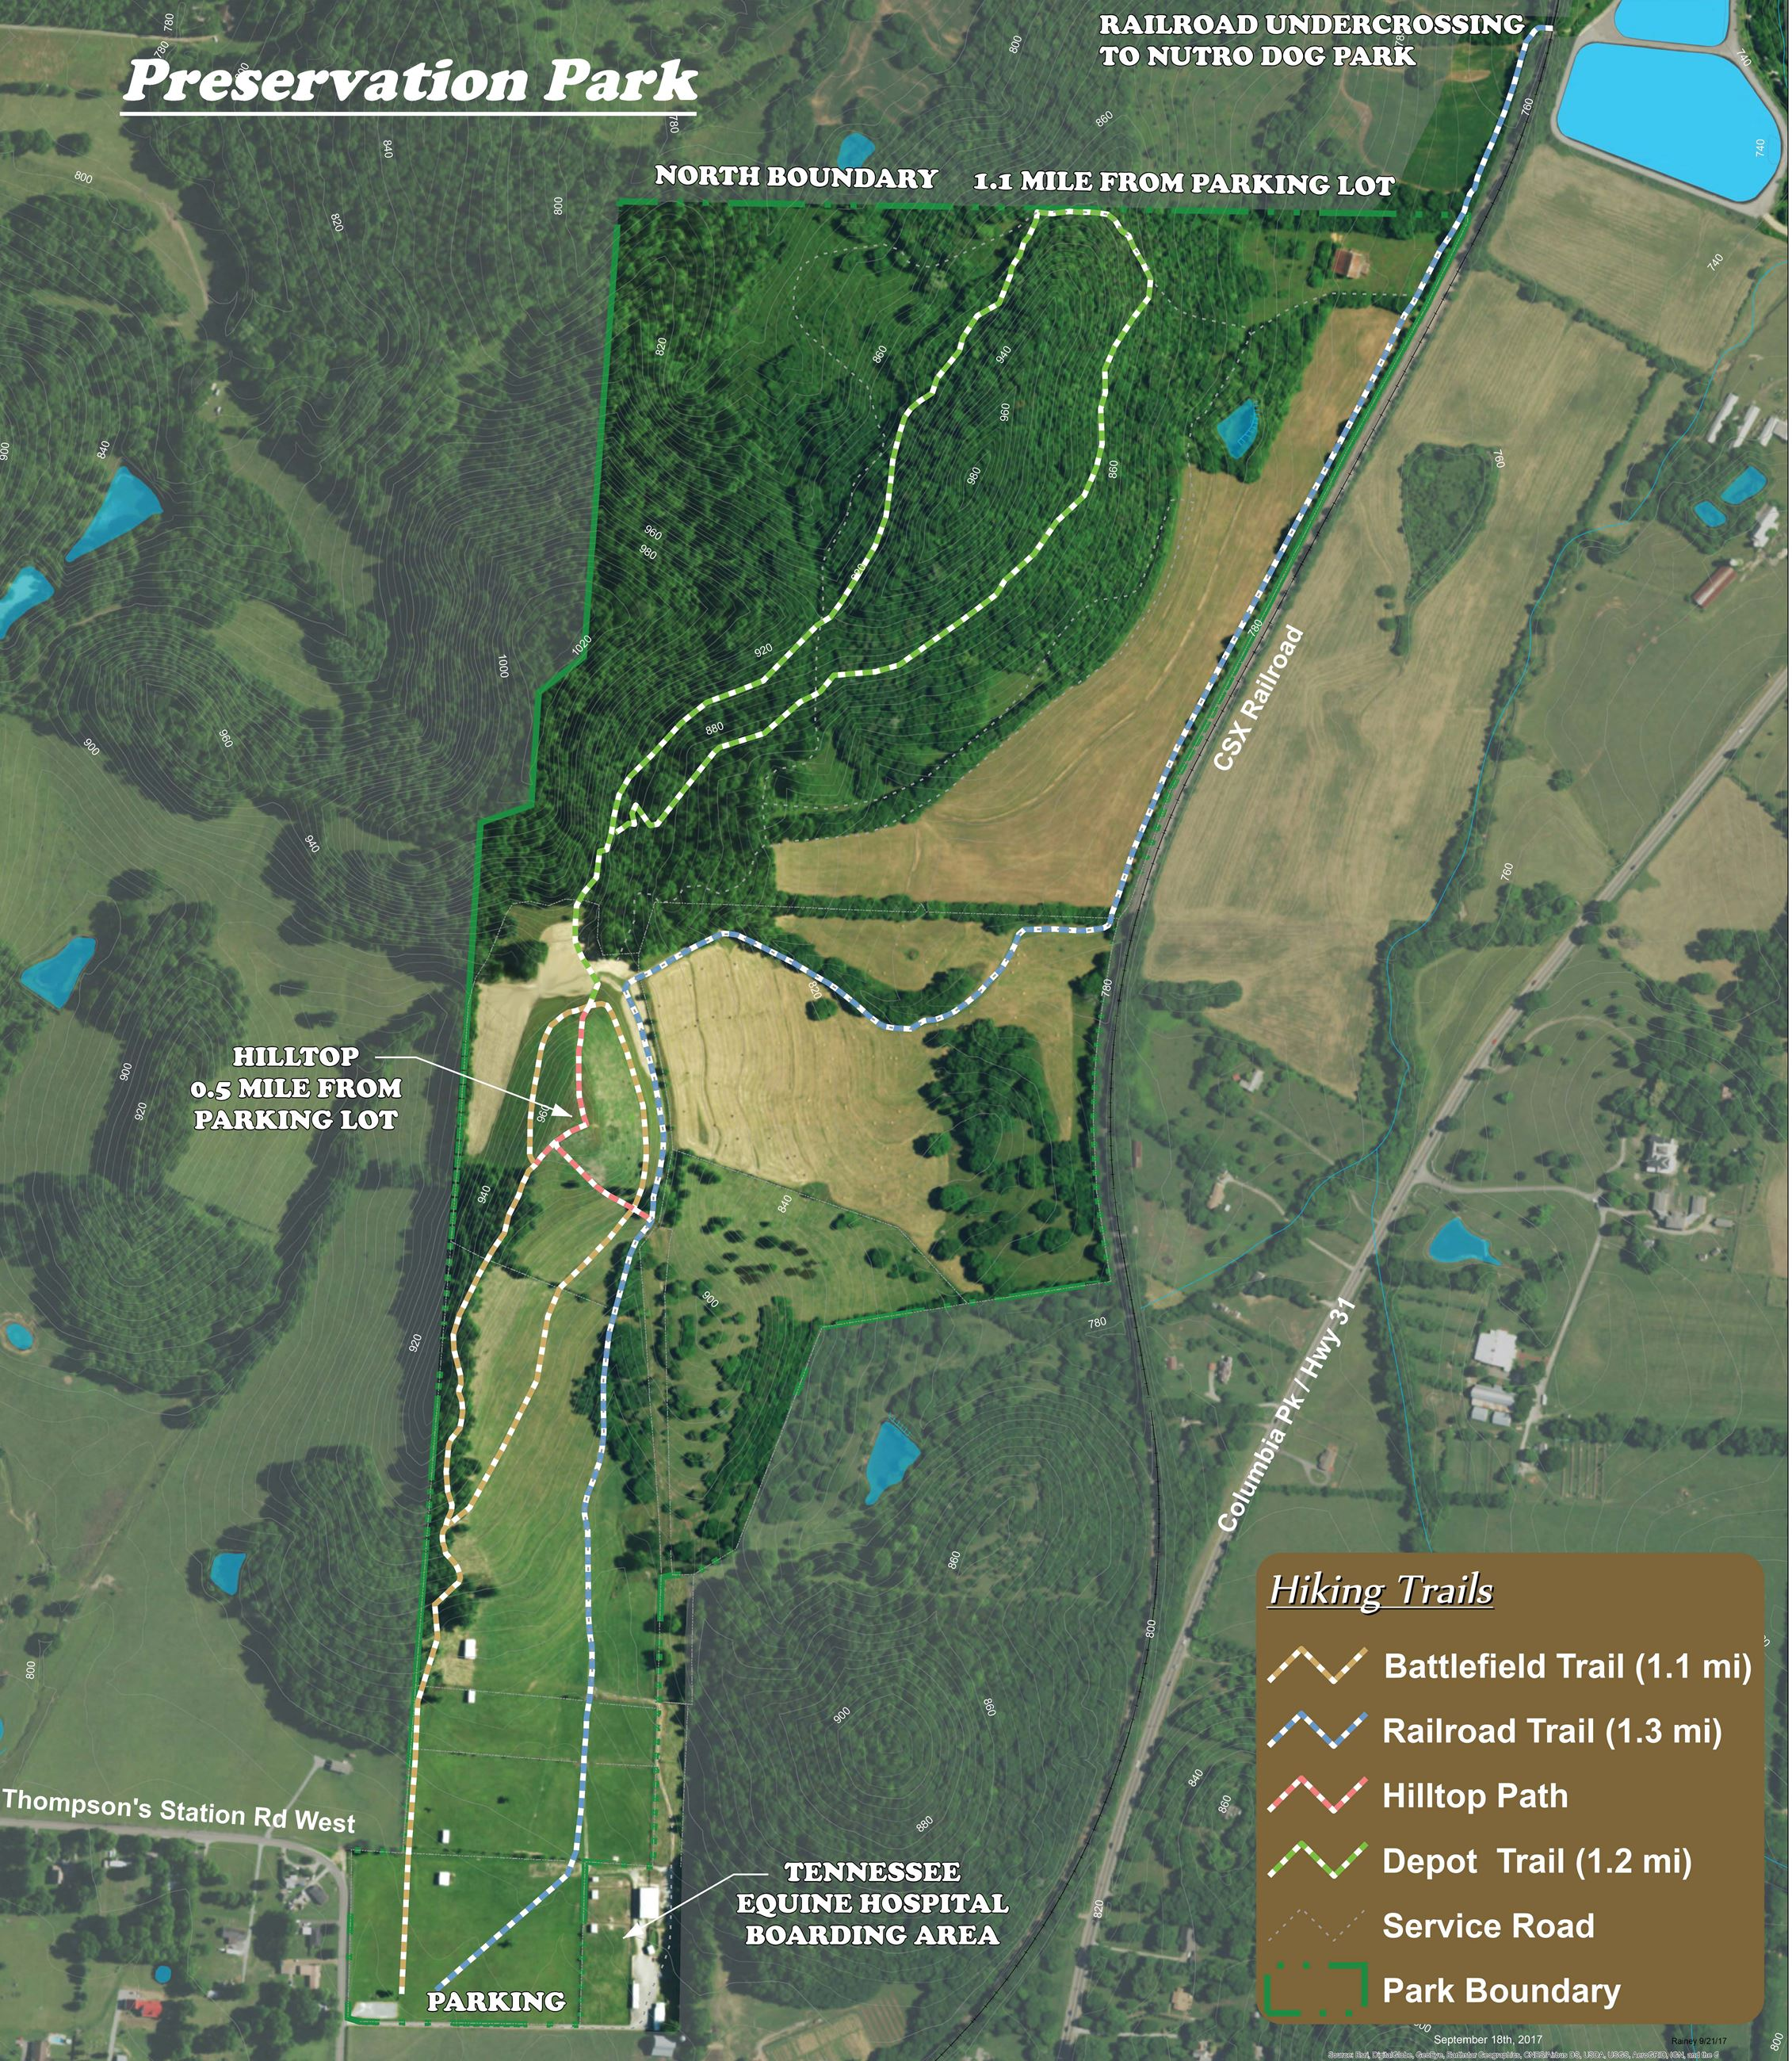 PresPark_Map_28x32_TrailInformationMap_12-11-17_v88 copy